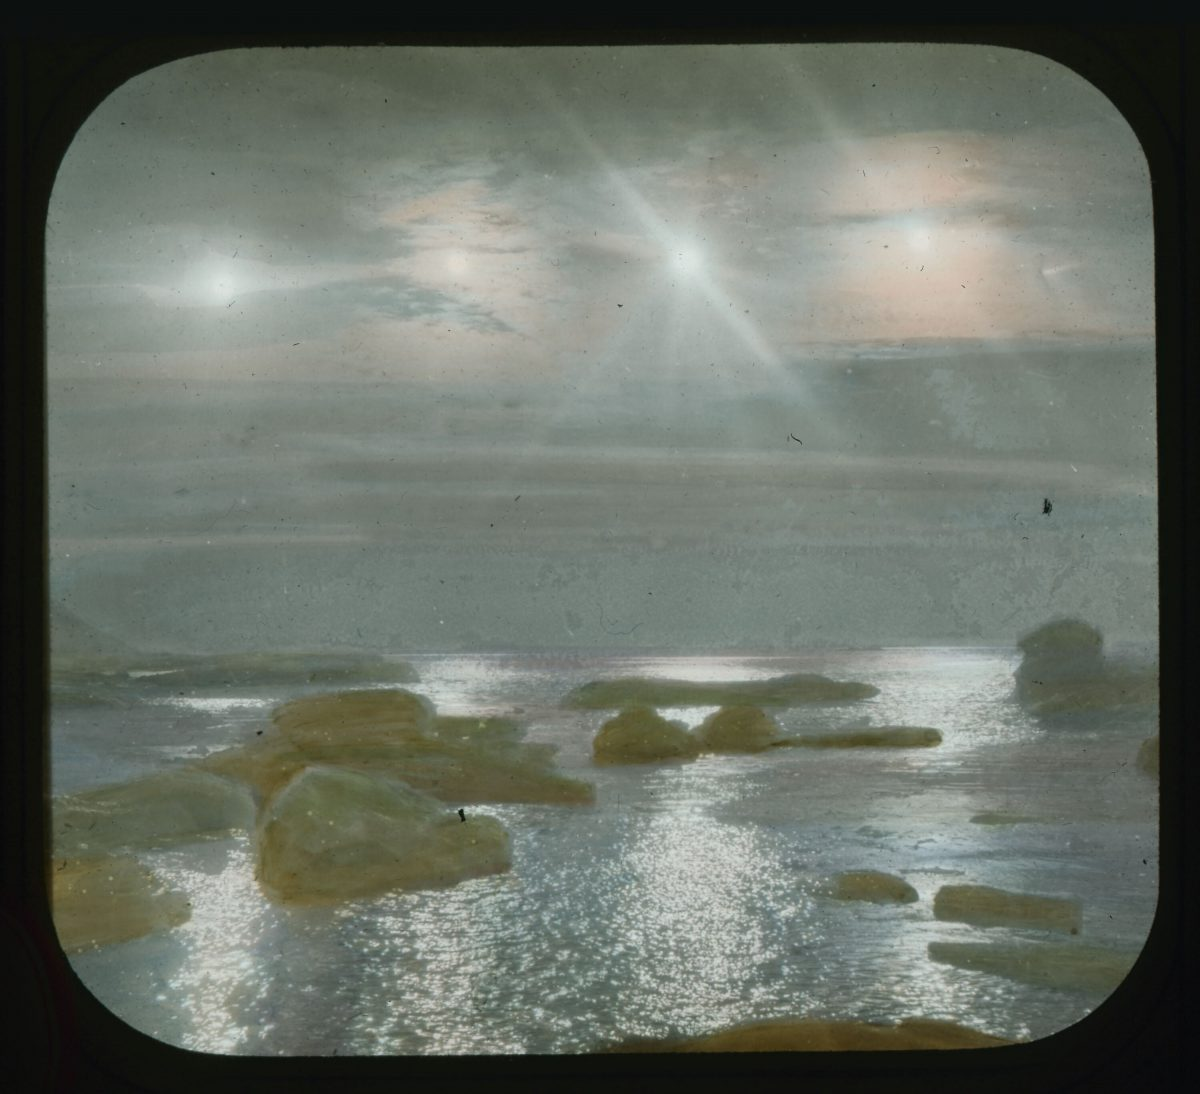 Four suns at thirty minutes each over Nerky [Neqe] Greenland image 1913-1917